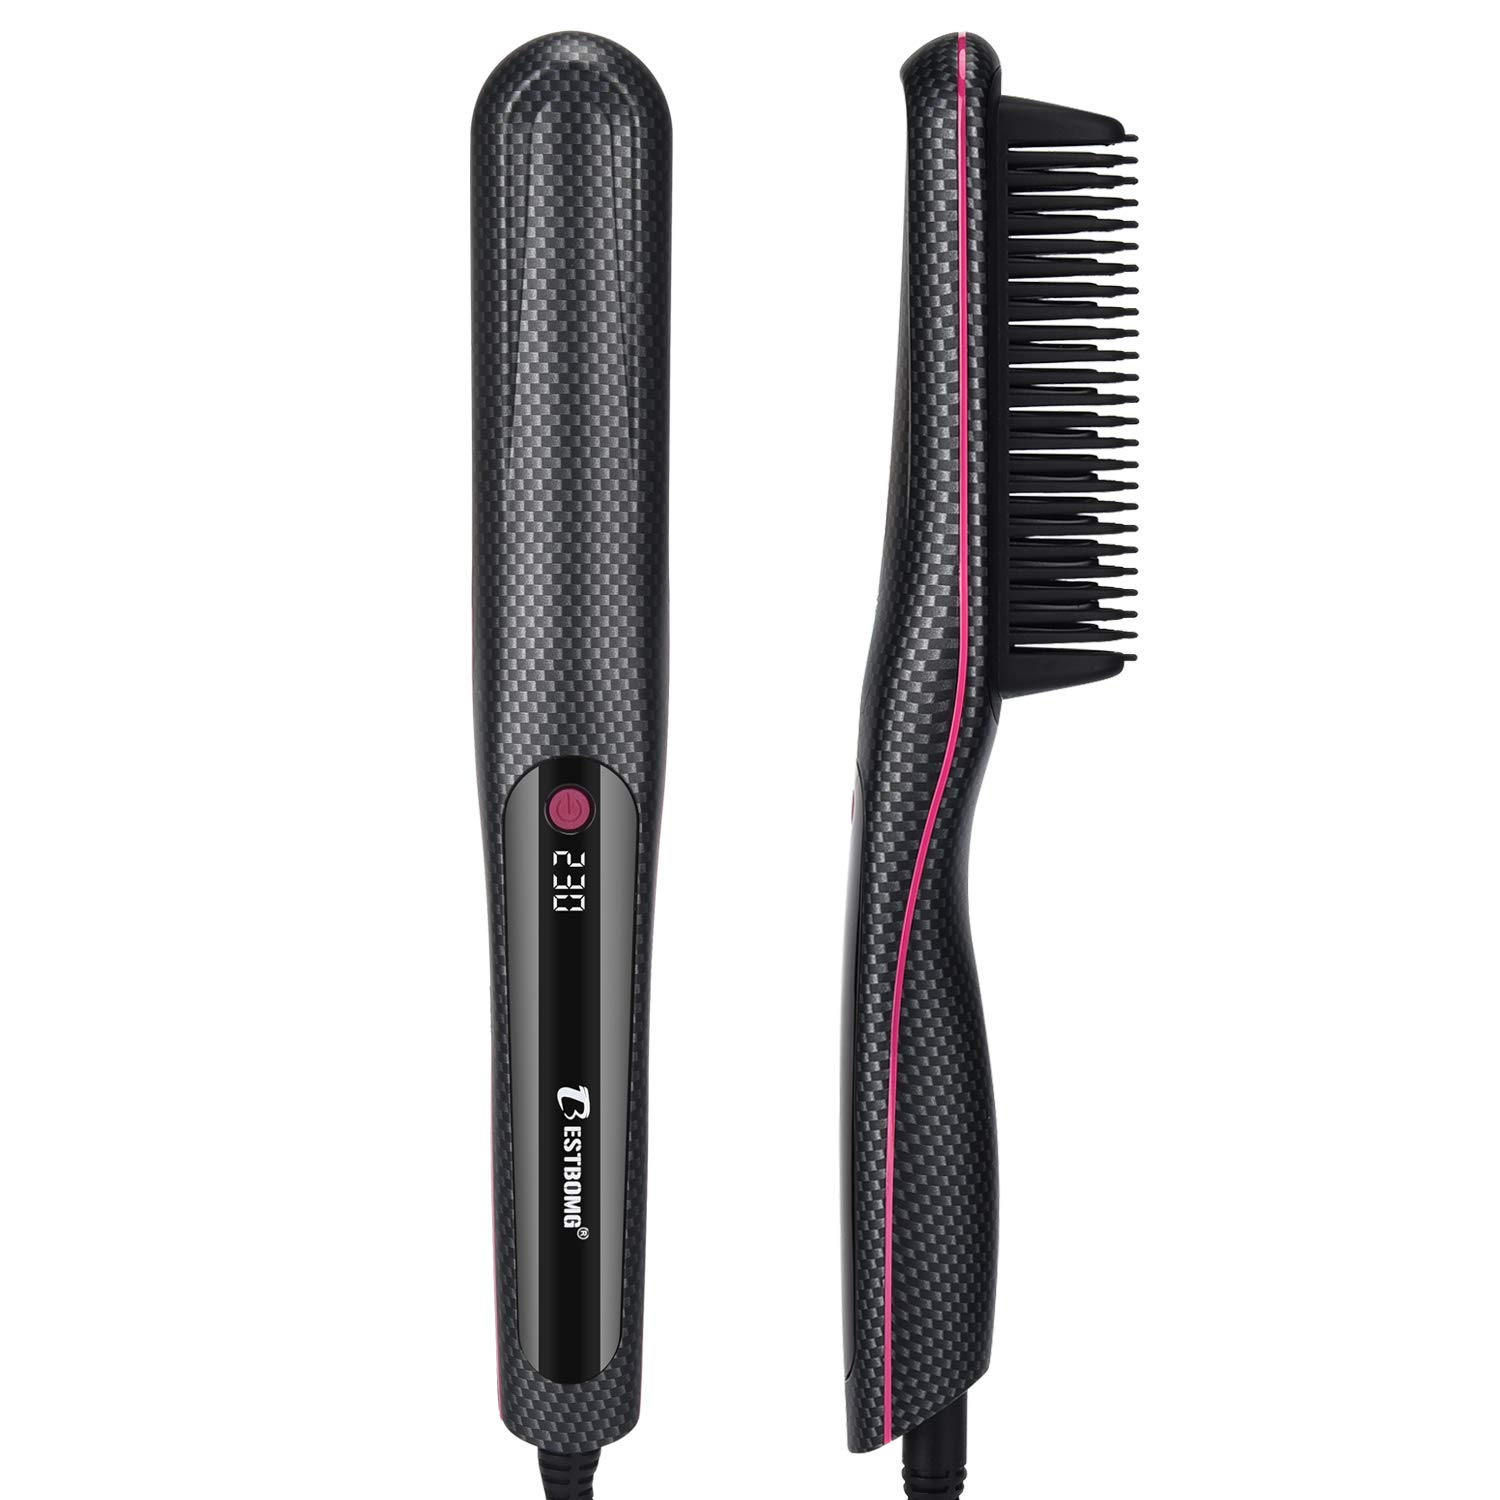 Hair Straightener Brush, BESTBOMG Fast Ceramic Heat/Ionic Hair Brush Comb Instant Styling for Women/Girl/Men Curling & Straightening Thick/Thin Hairs & Long Beard Comb Straighteners with 0.98-IN Teeth